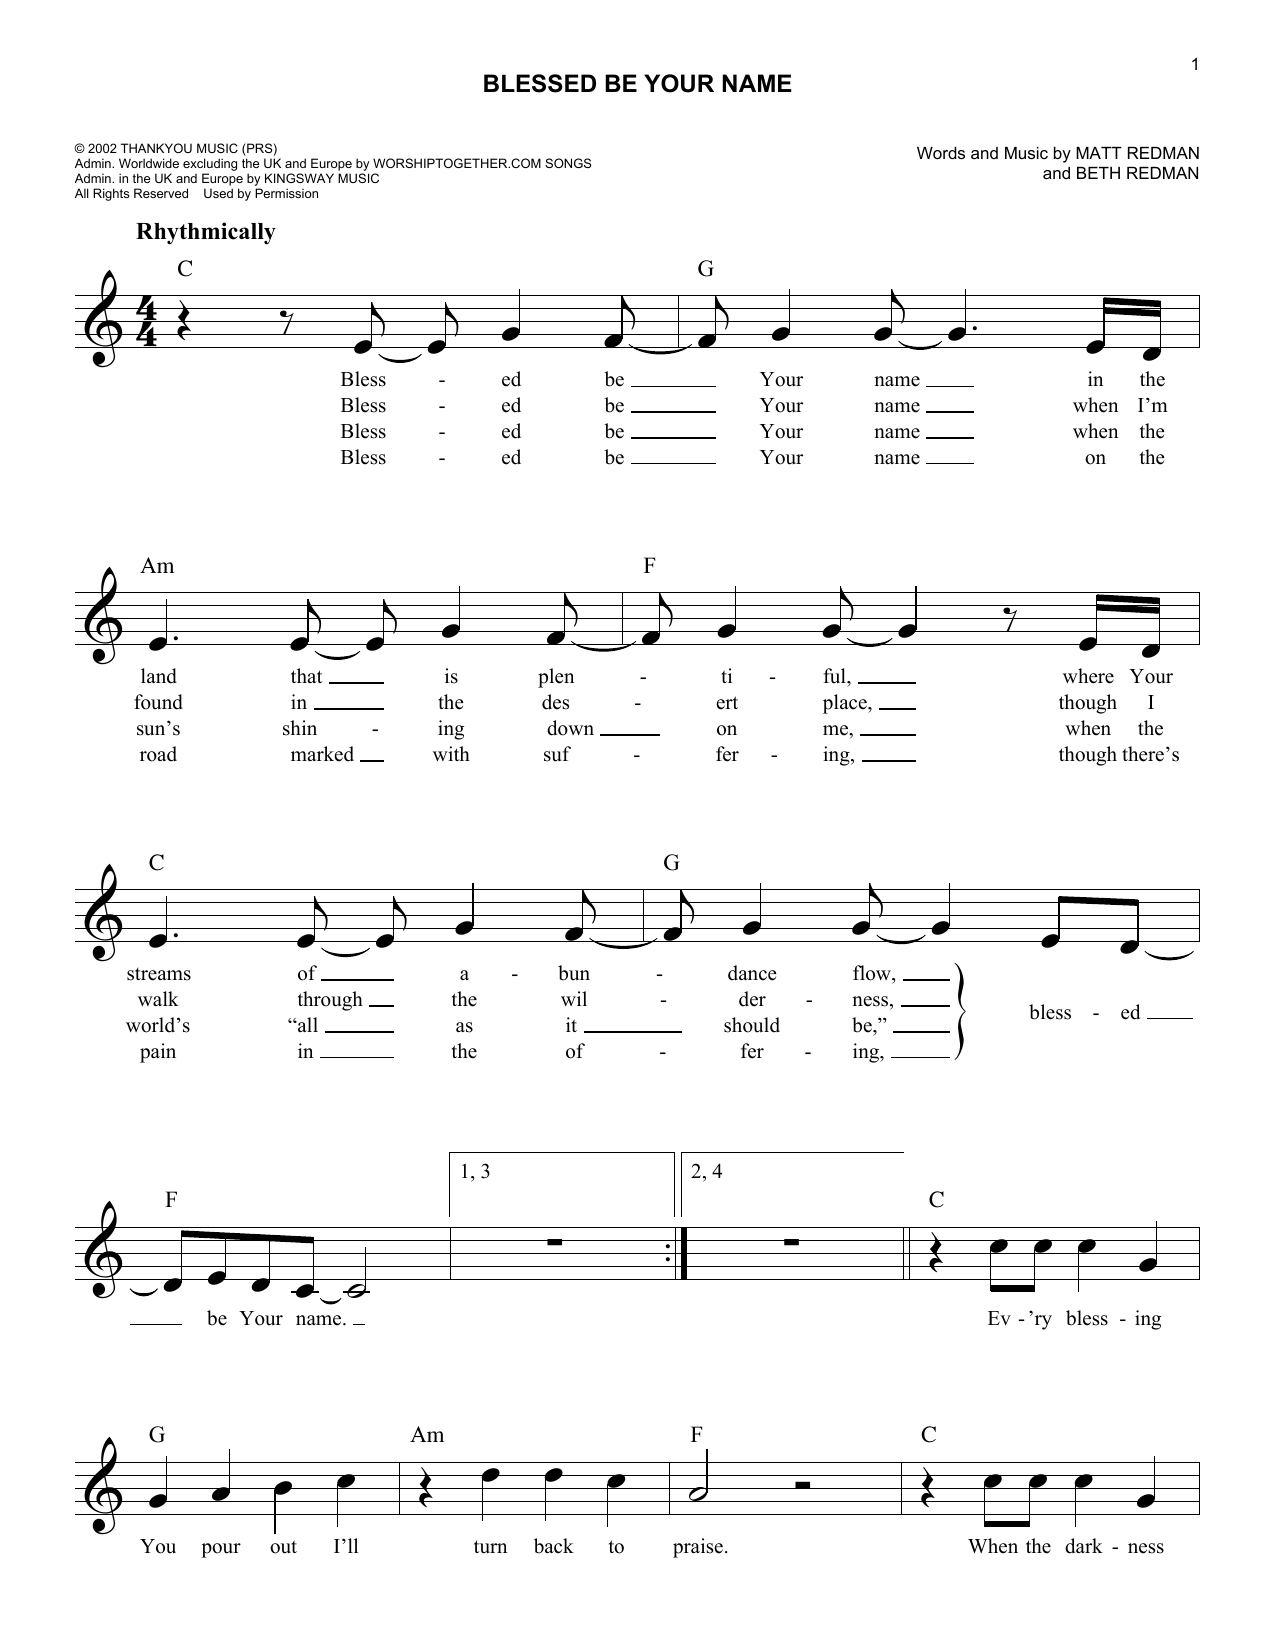 Sheet music digital files to print licensed beth redman digital blessed be your name hexwebz Images